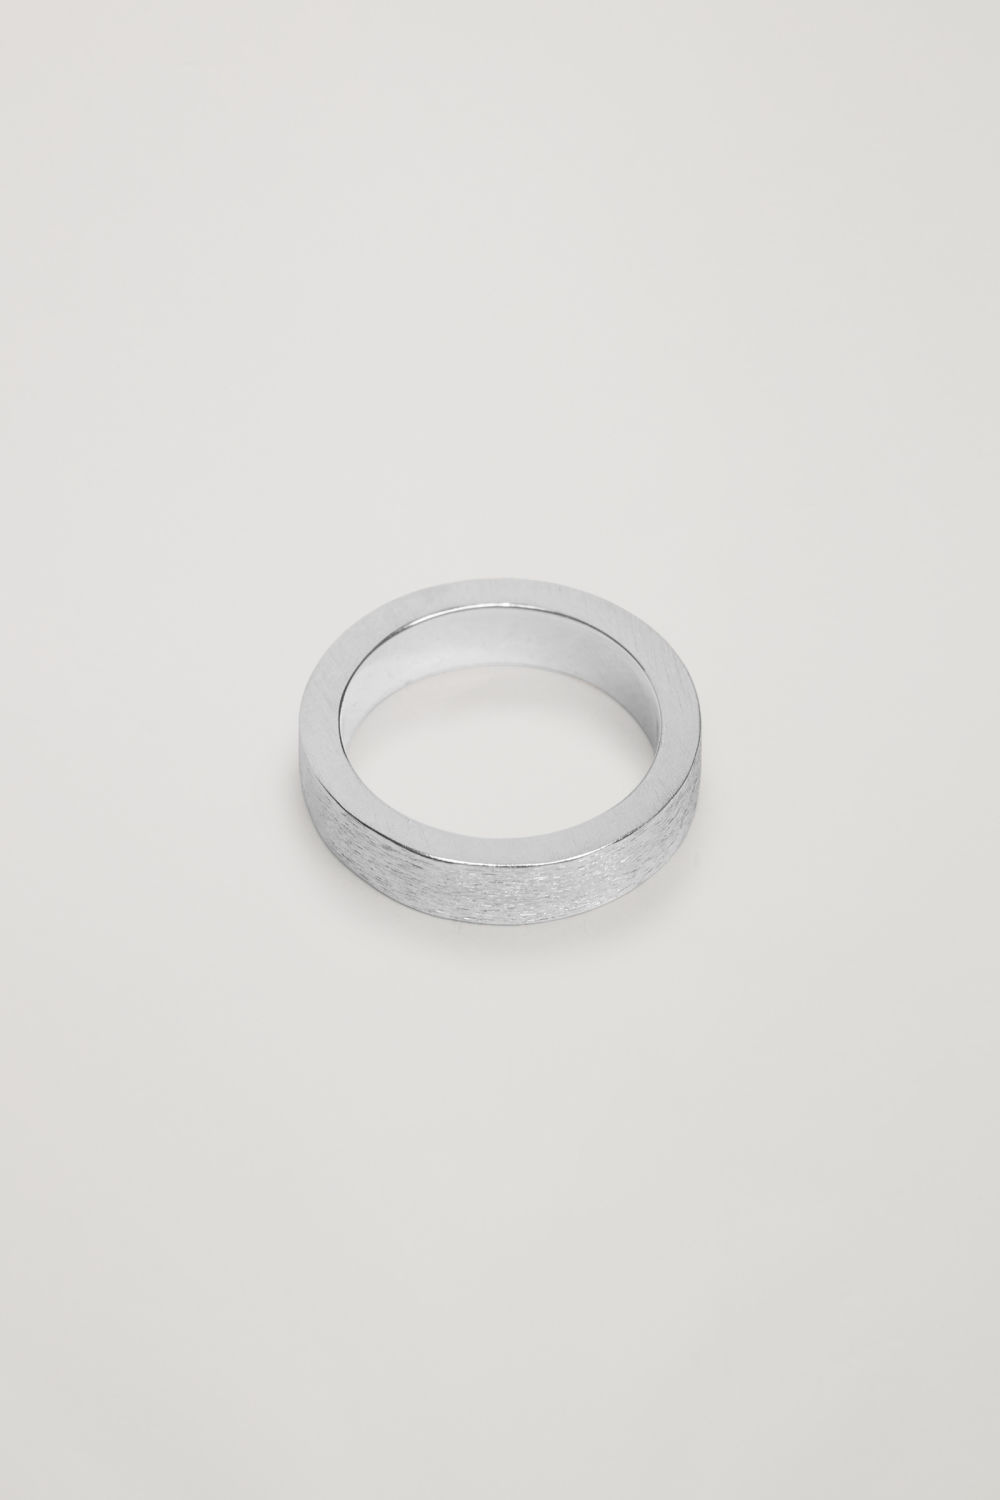 BRASS SQUARE PROFILE RING